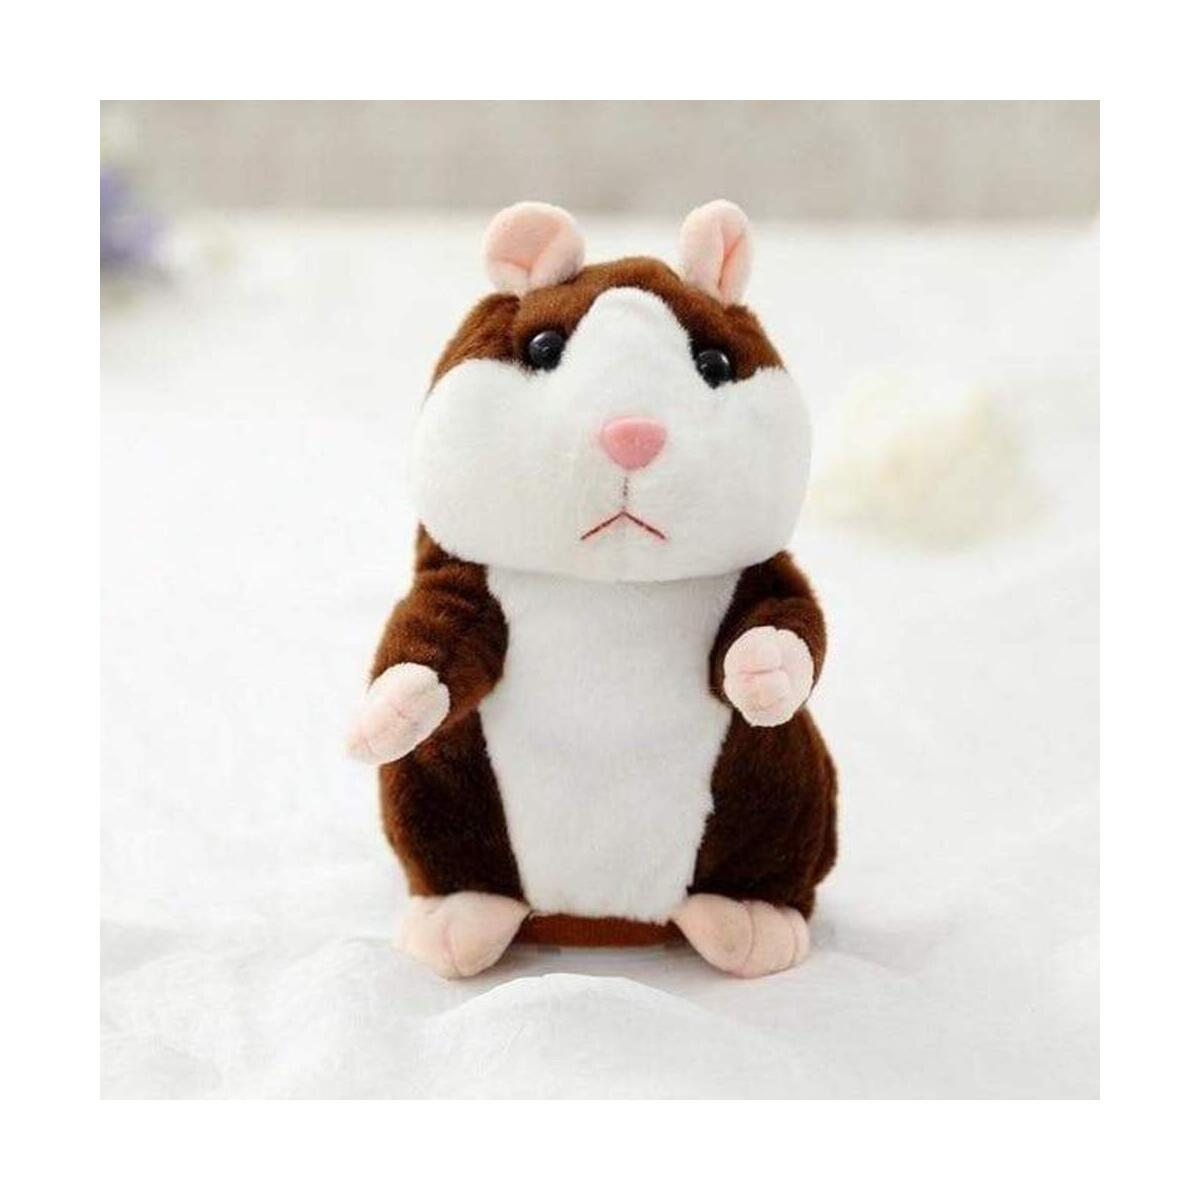 Milo the Talking Hamster Mouse Toy - Repeats What You Say and Can Walk Pet Talking Plush Buddy